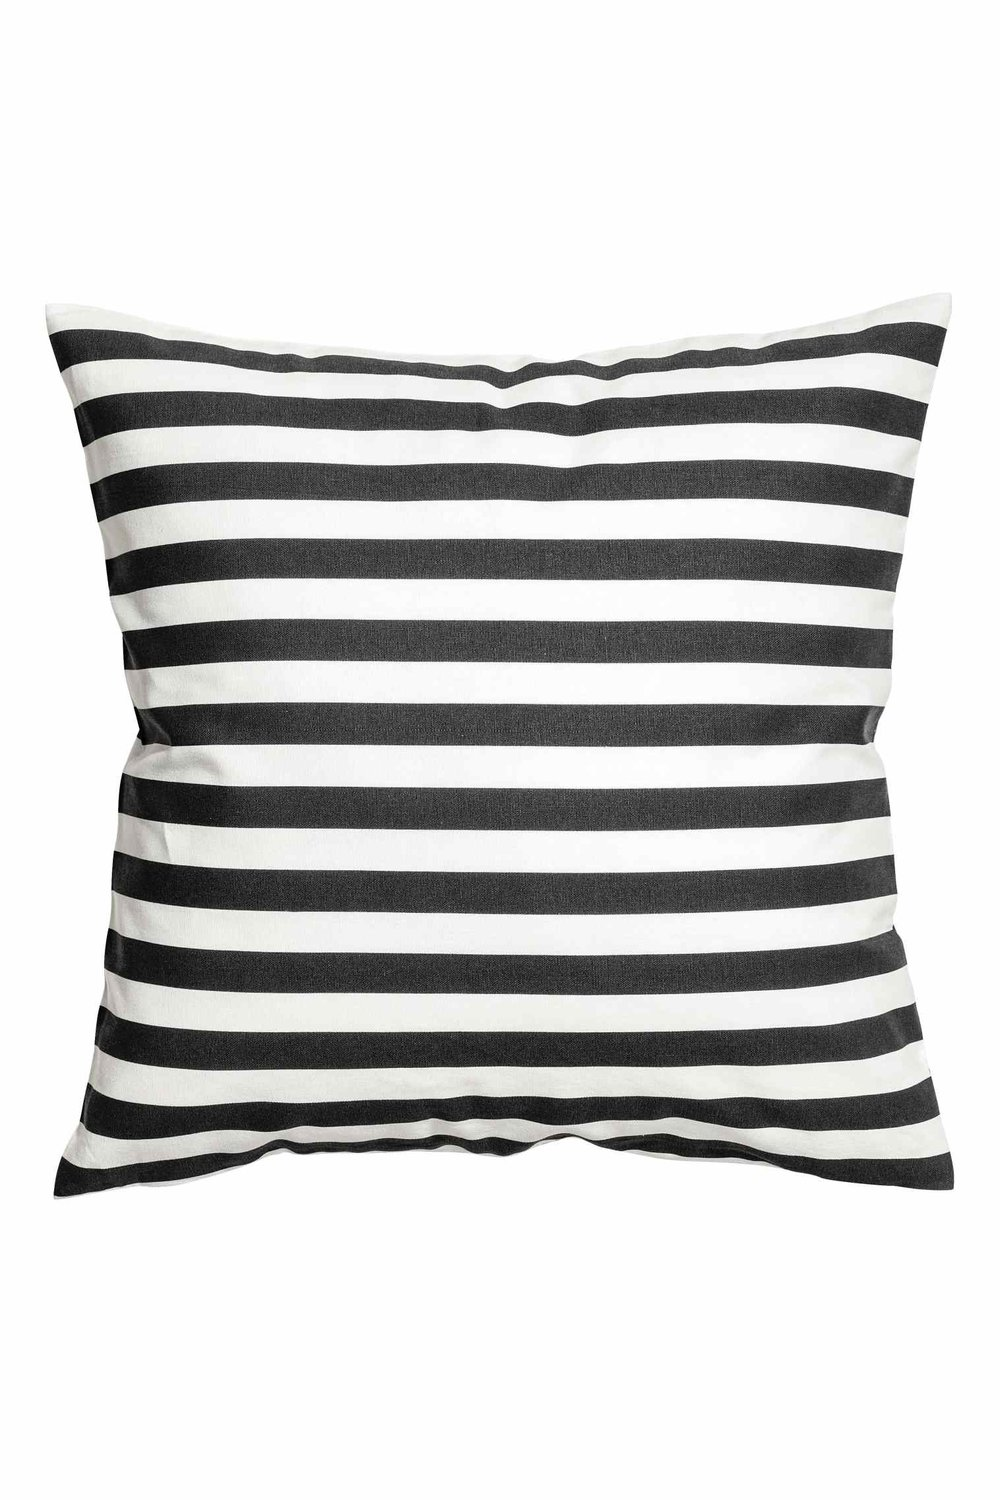 Striped cushion cover, $7